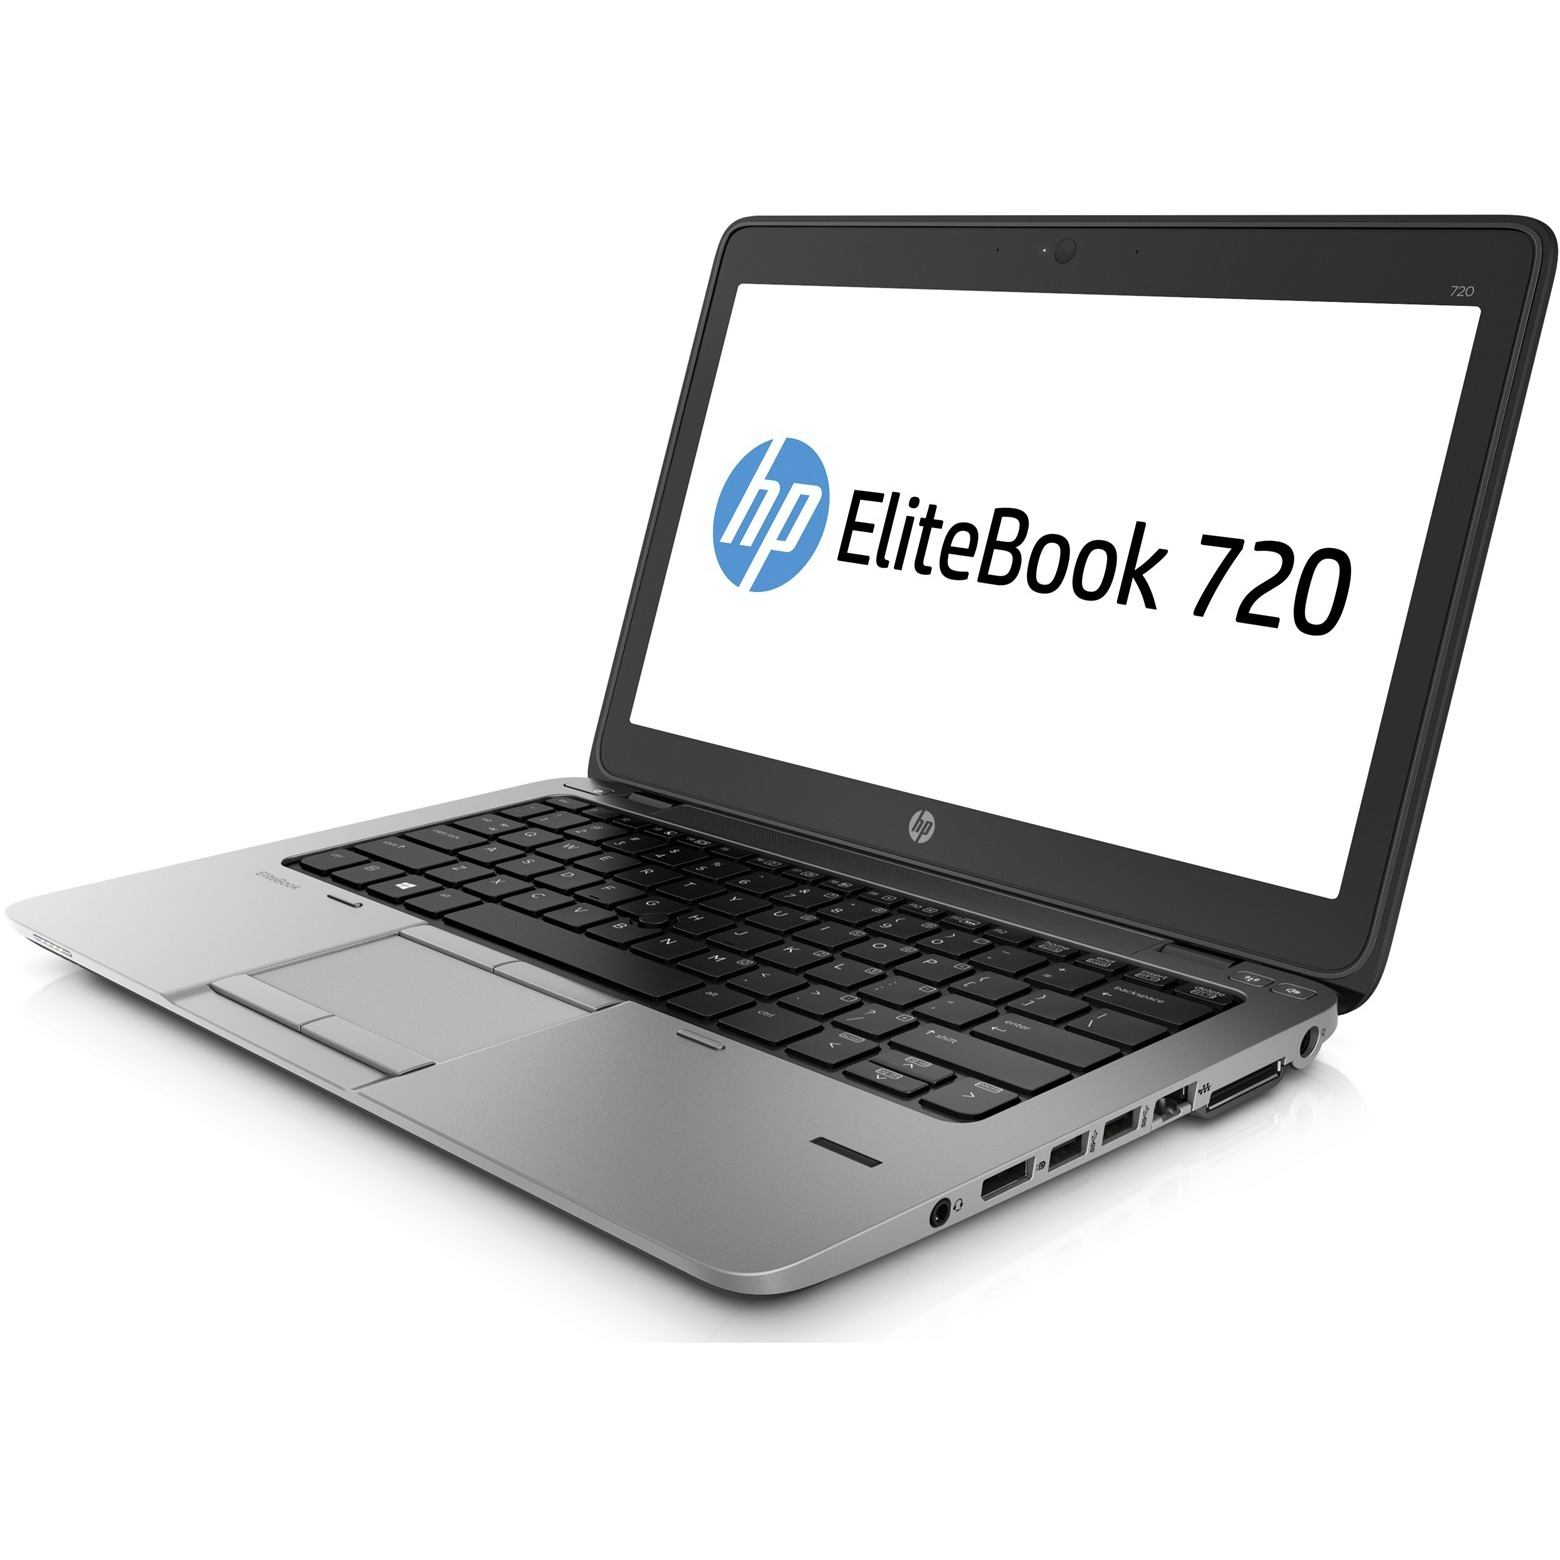 HP EliteBook 720 G1 31.8 cm 12.5inch LED Notebook - Intel Core i3 i3-4030U 1.90 GHz - Gunmetal